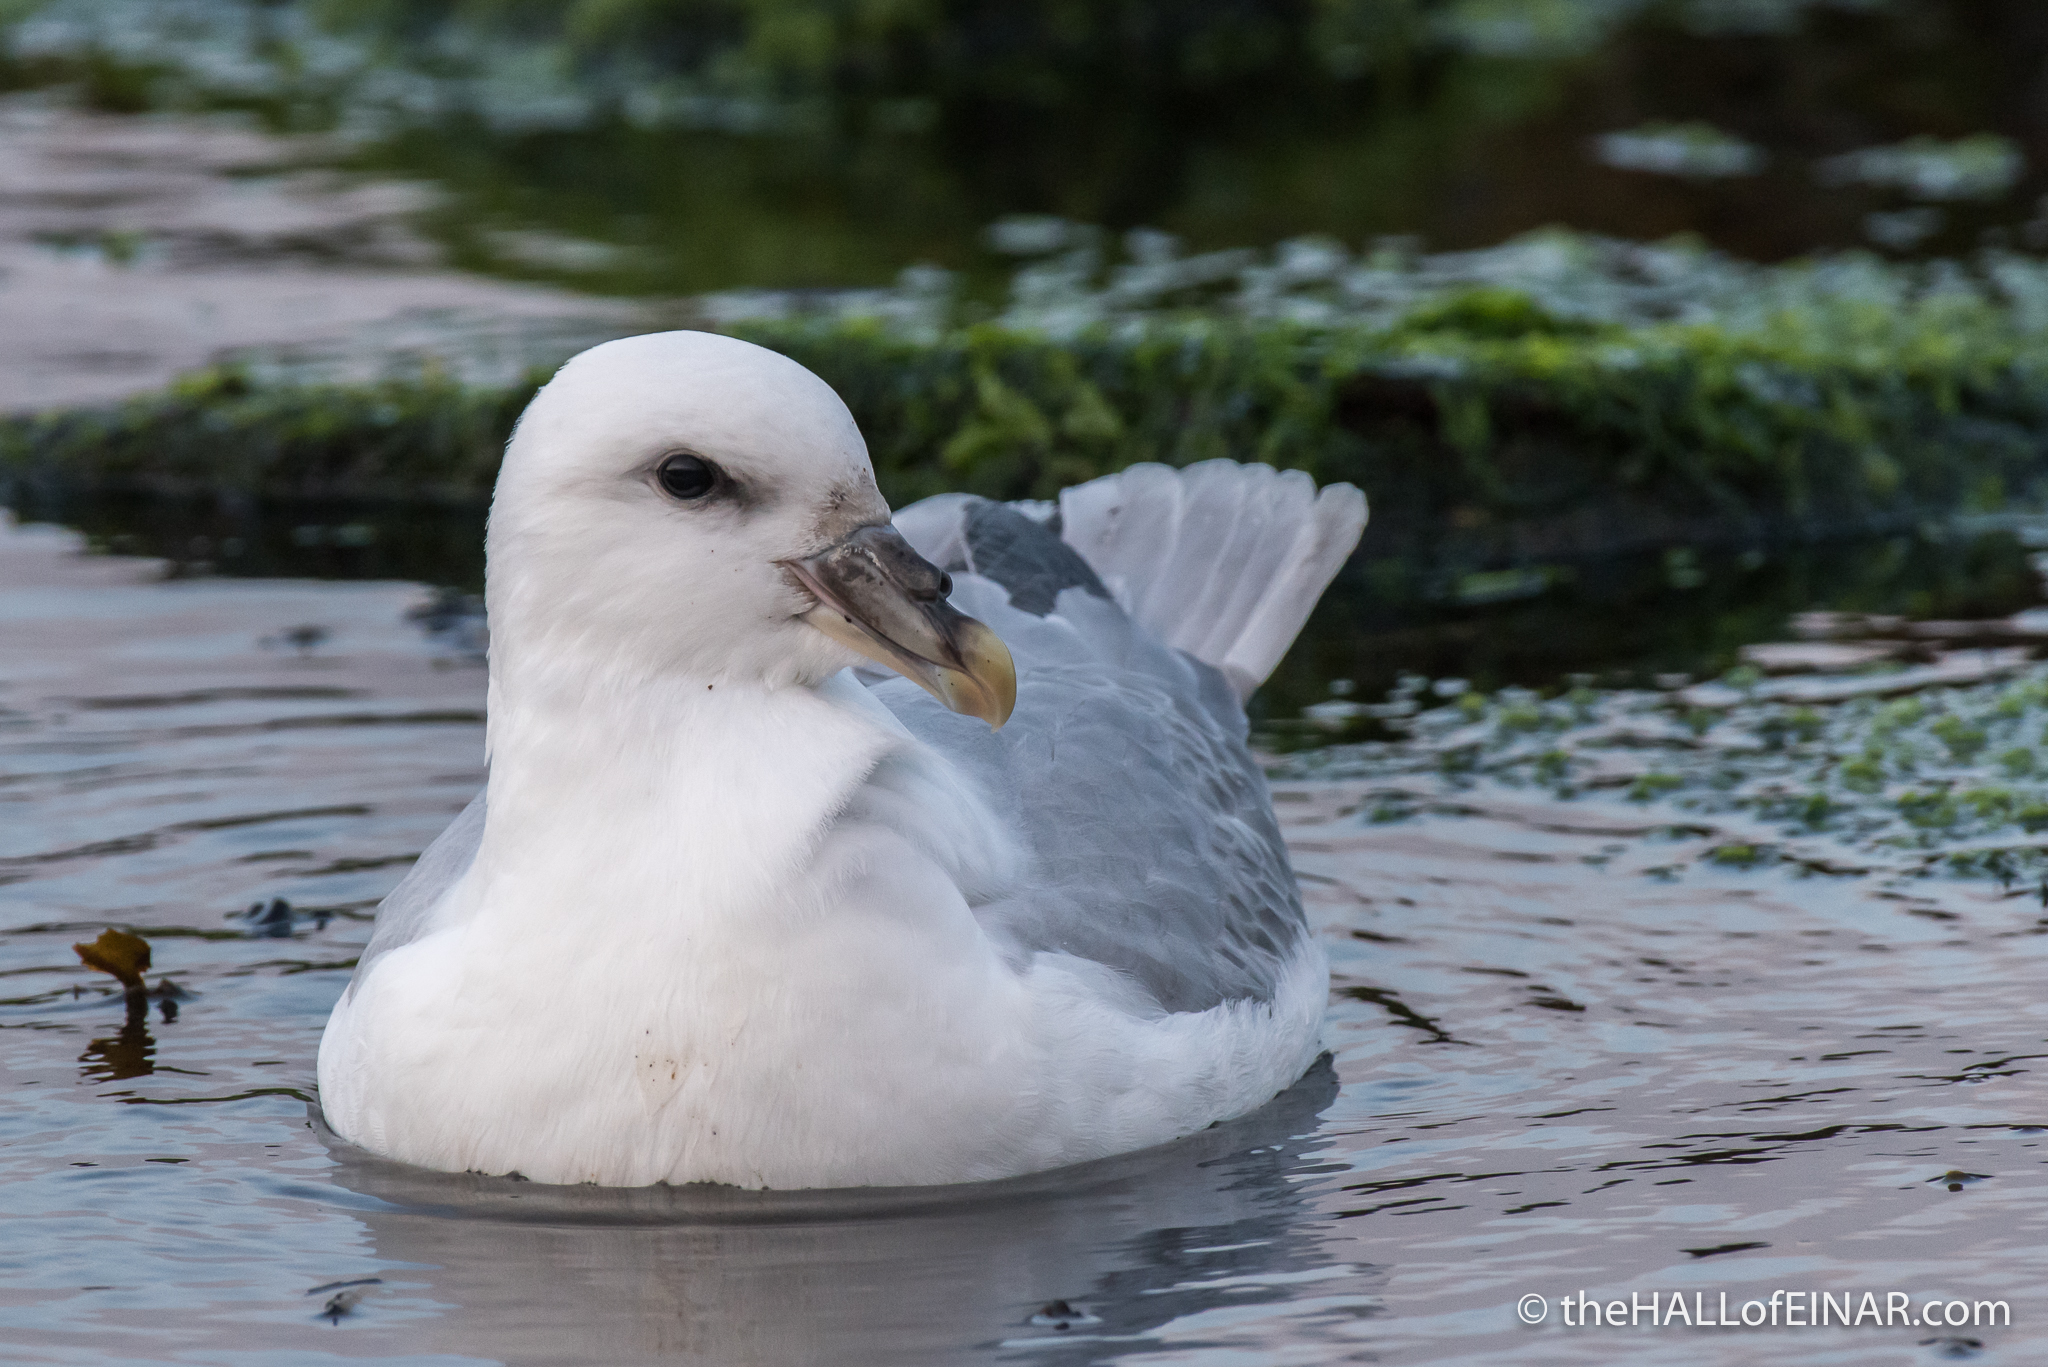 Swimming Fulmar - The Hall of Einar - photograph (c) David Bailey (not the)